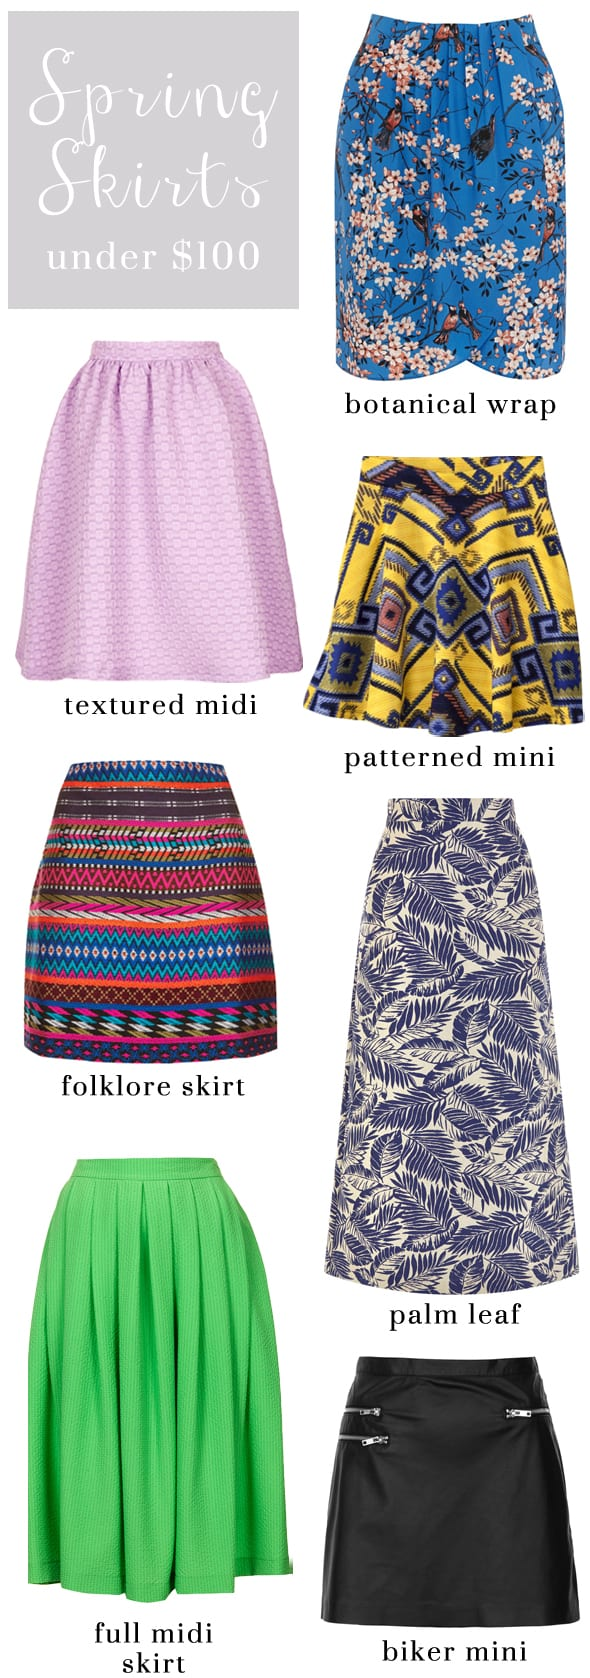 Poor Little It Girl - Springtime Skirts Under $100